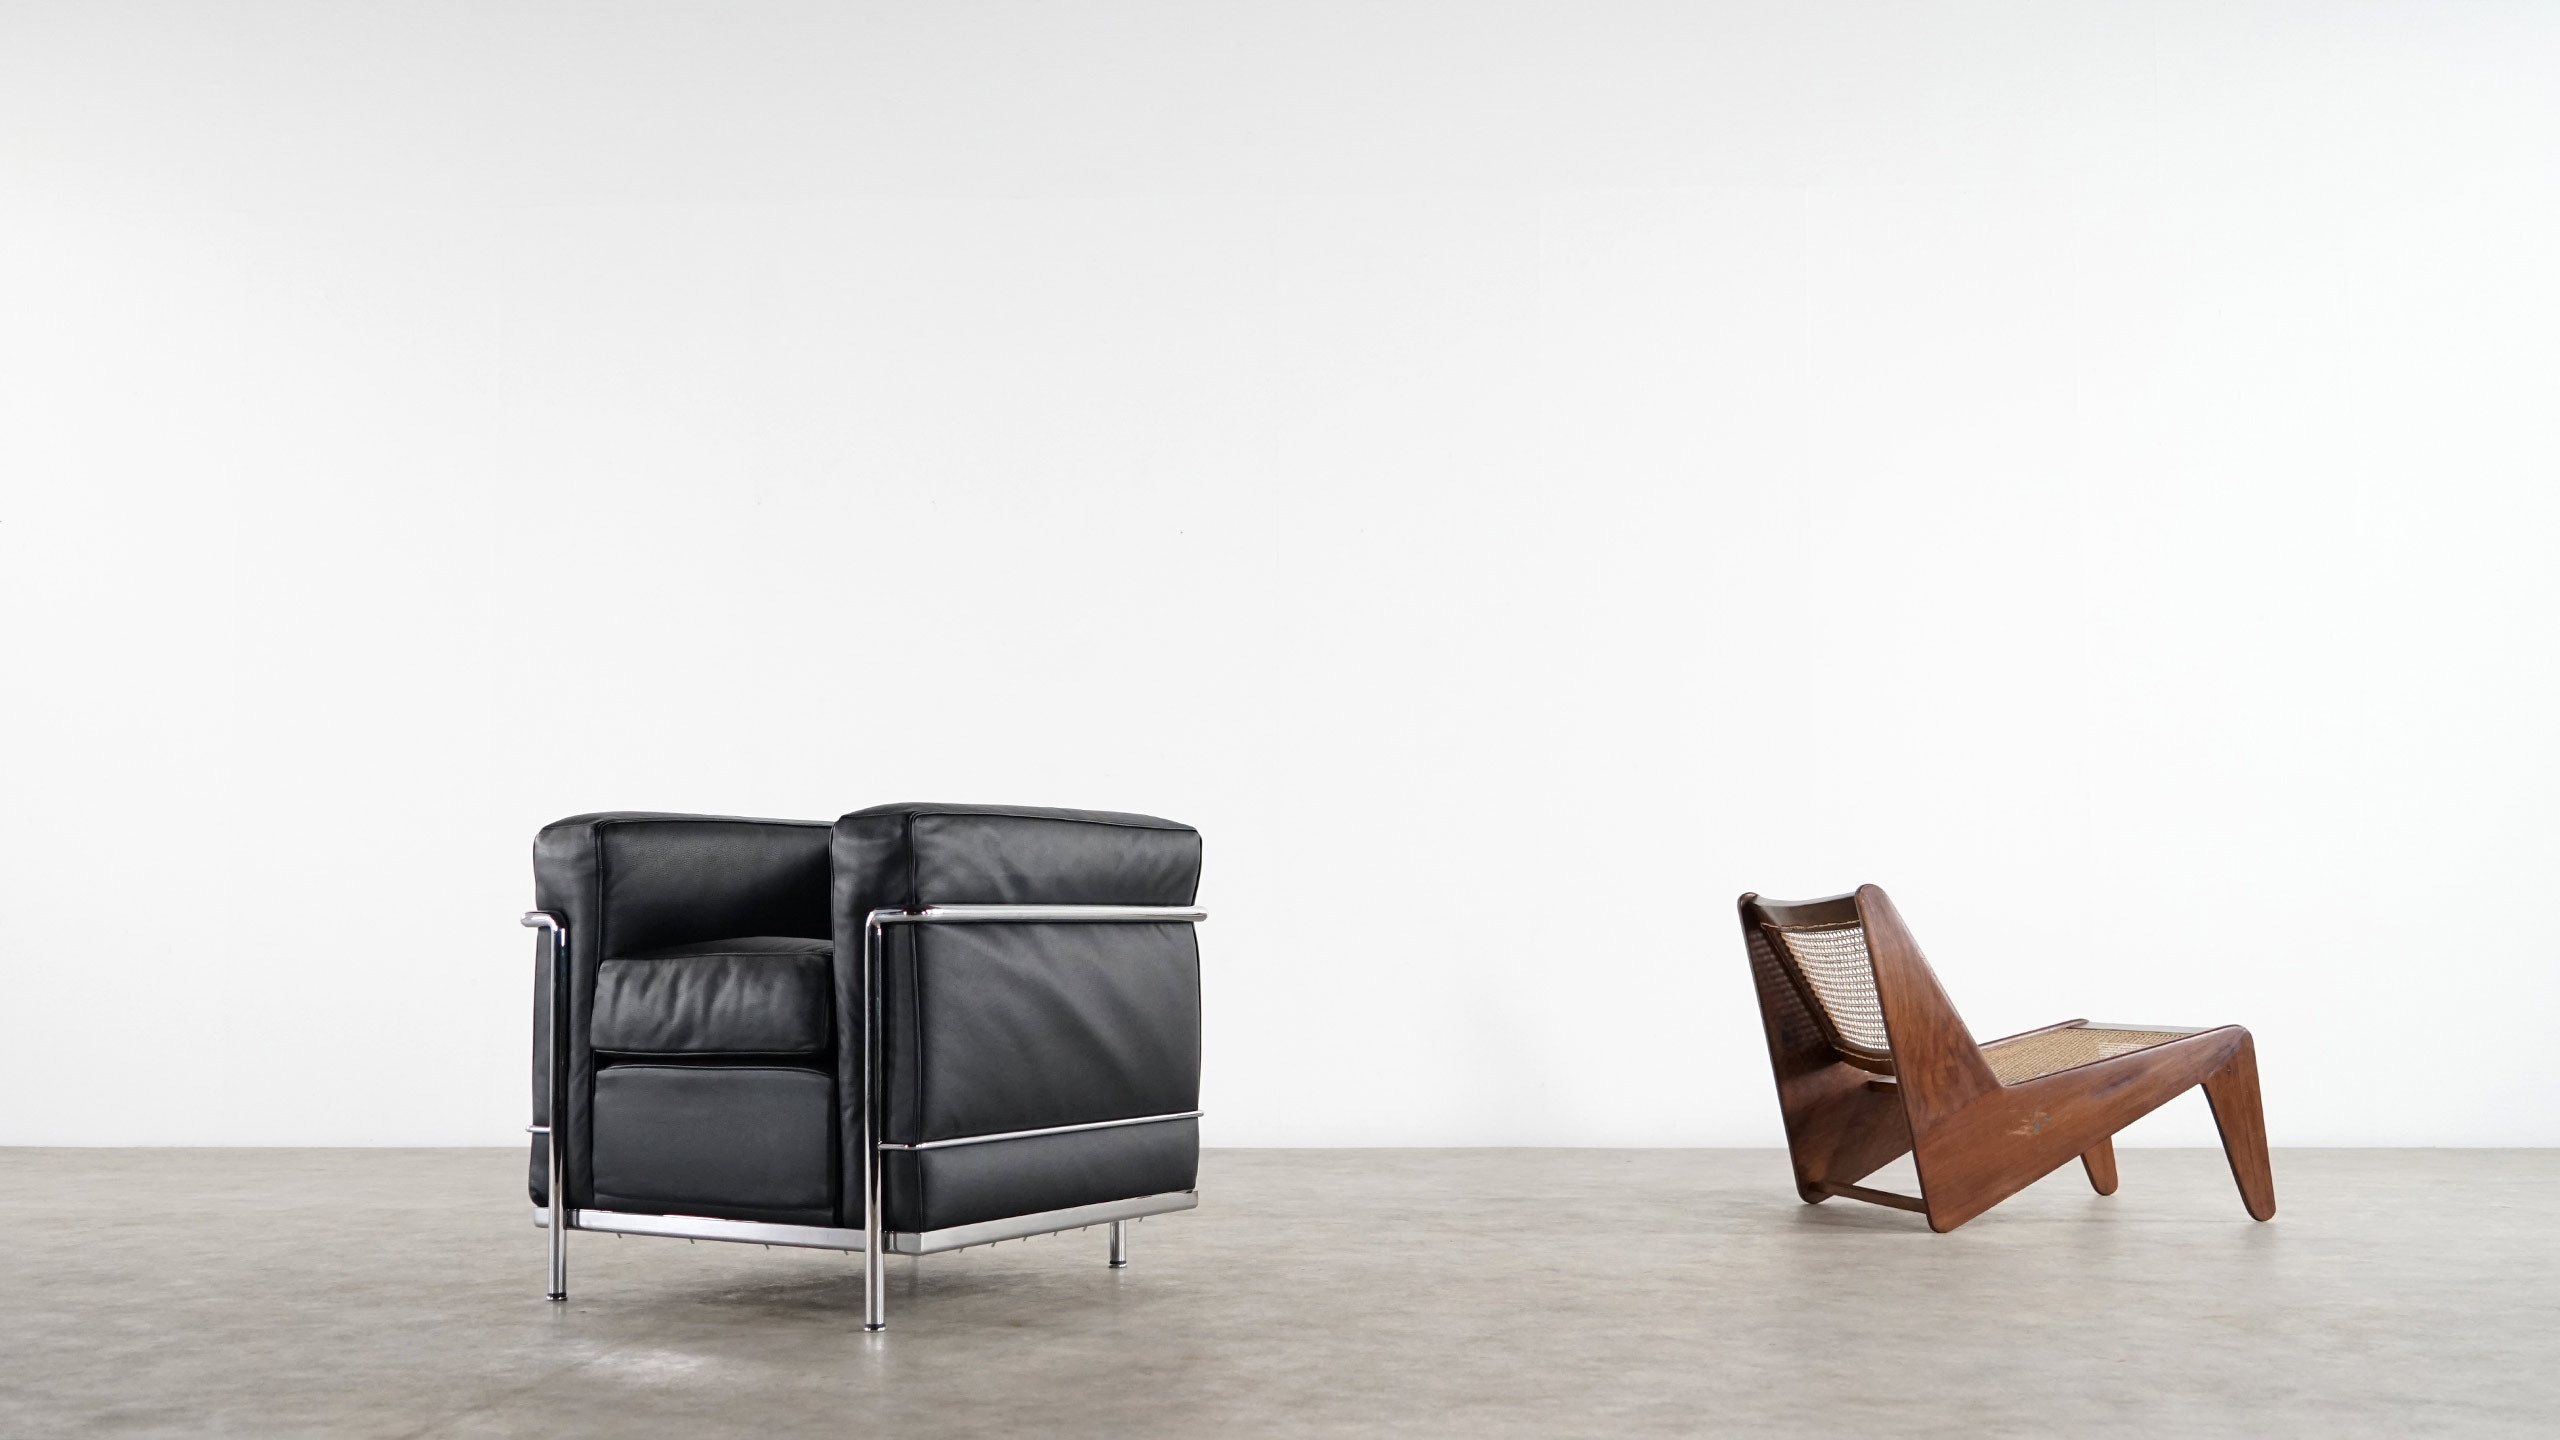 Le Corbusier Sessel Lc2 Le Corbusier Lc2 Lounge Chair By Cassina Zorrobot